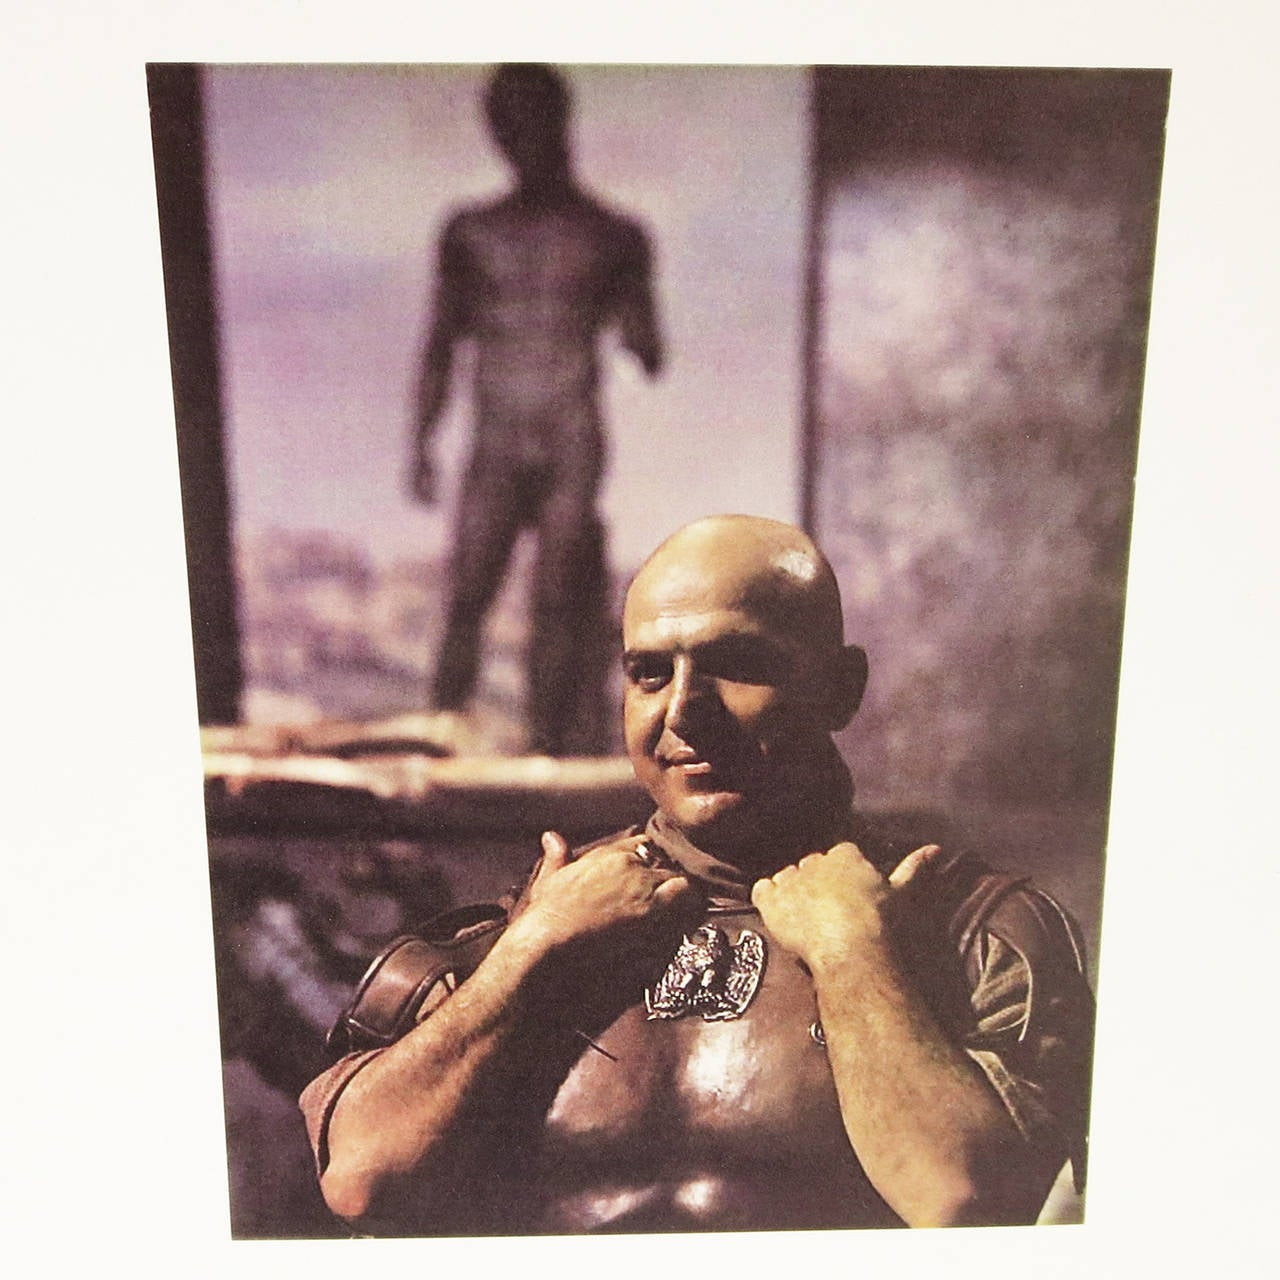 "Telly Savalas Leather Chest Plate Prop from ""The Greatest Story Ever Told"", 1965 9"